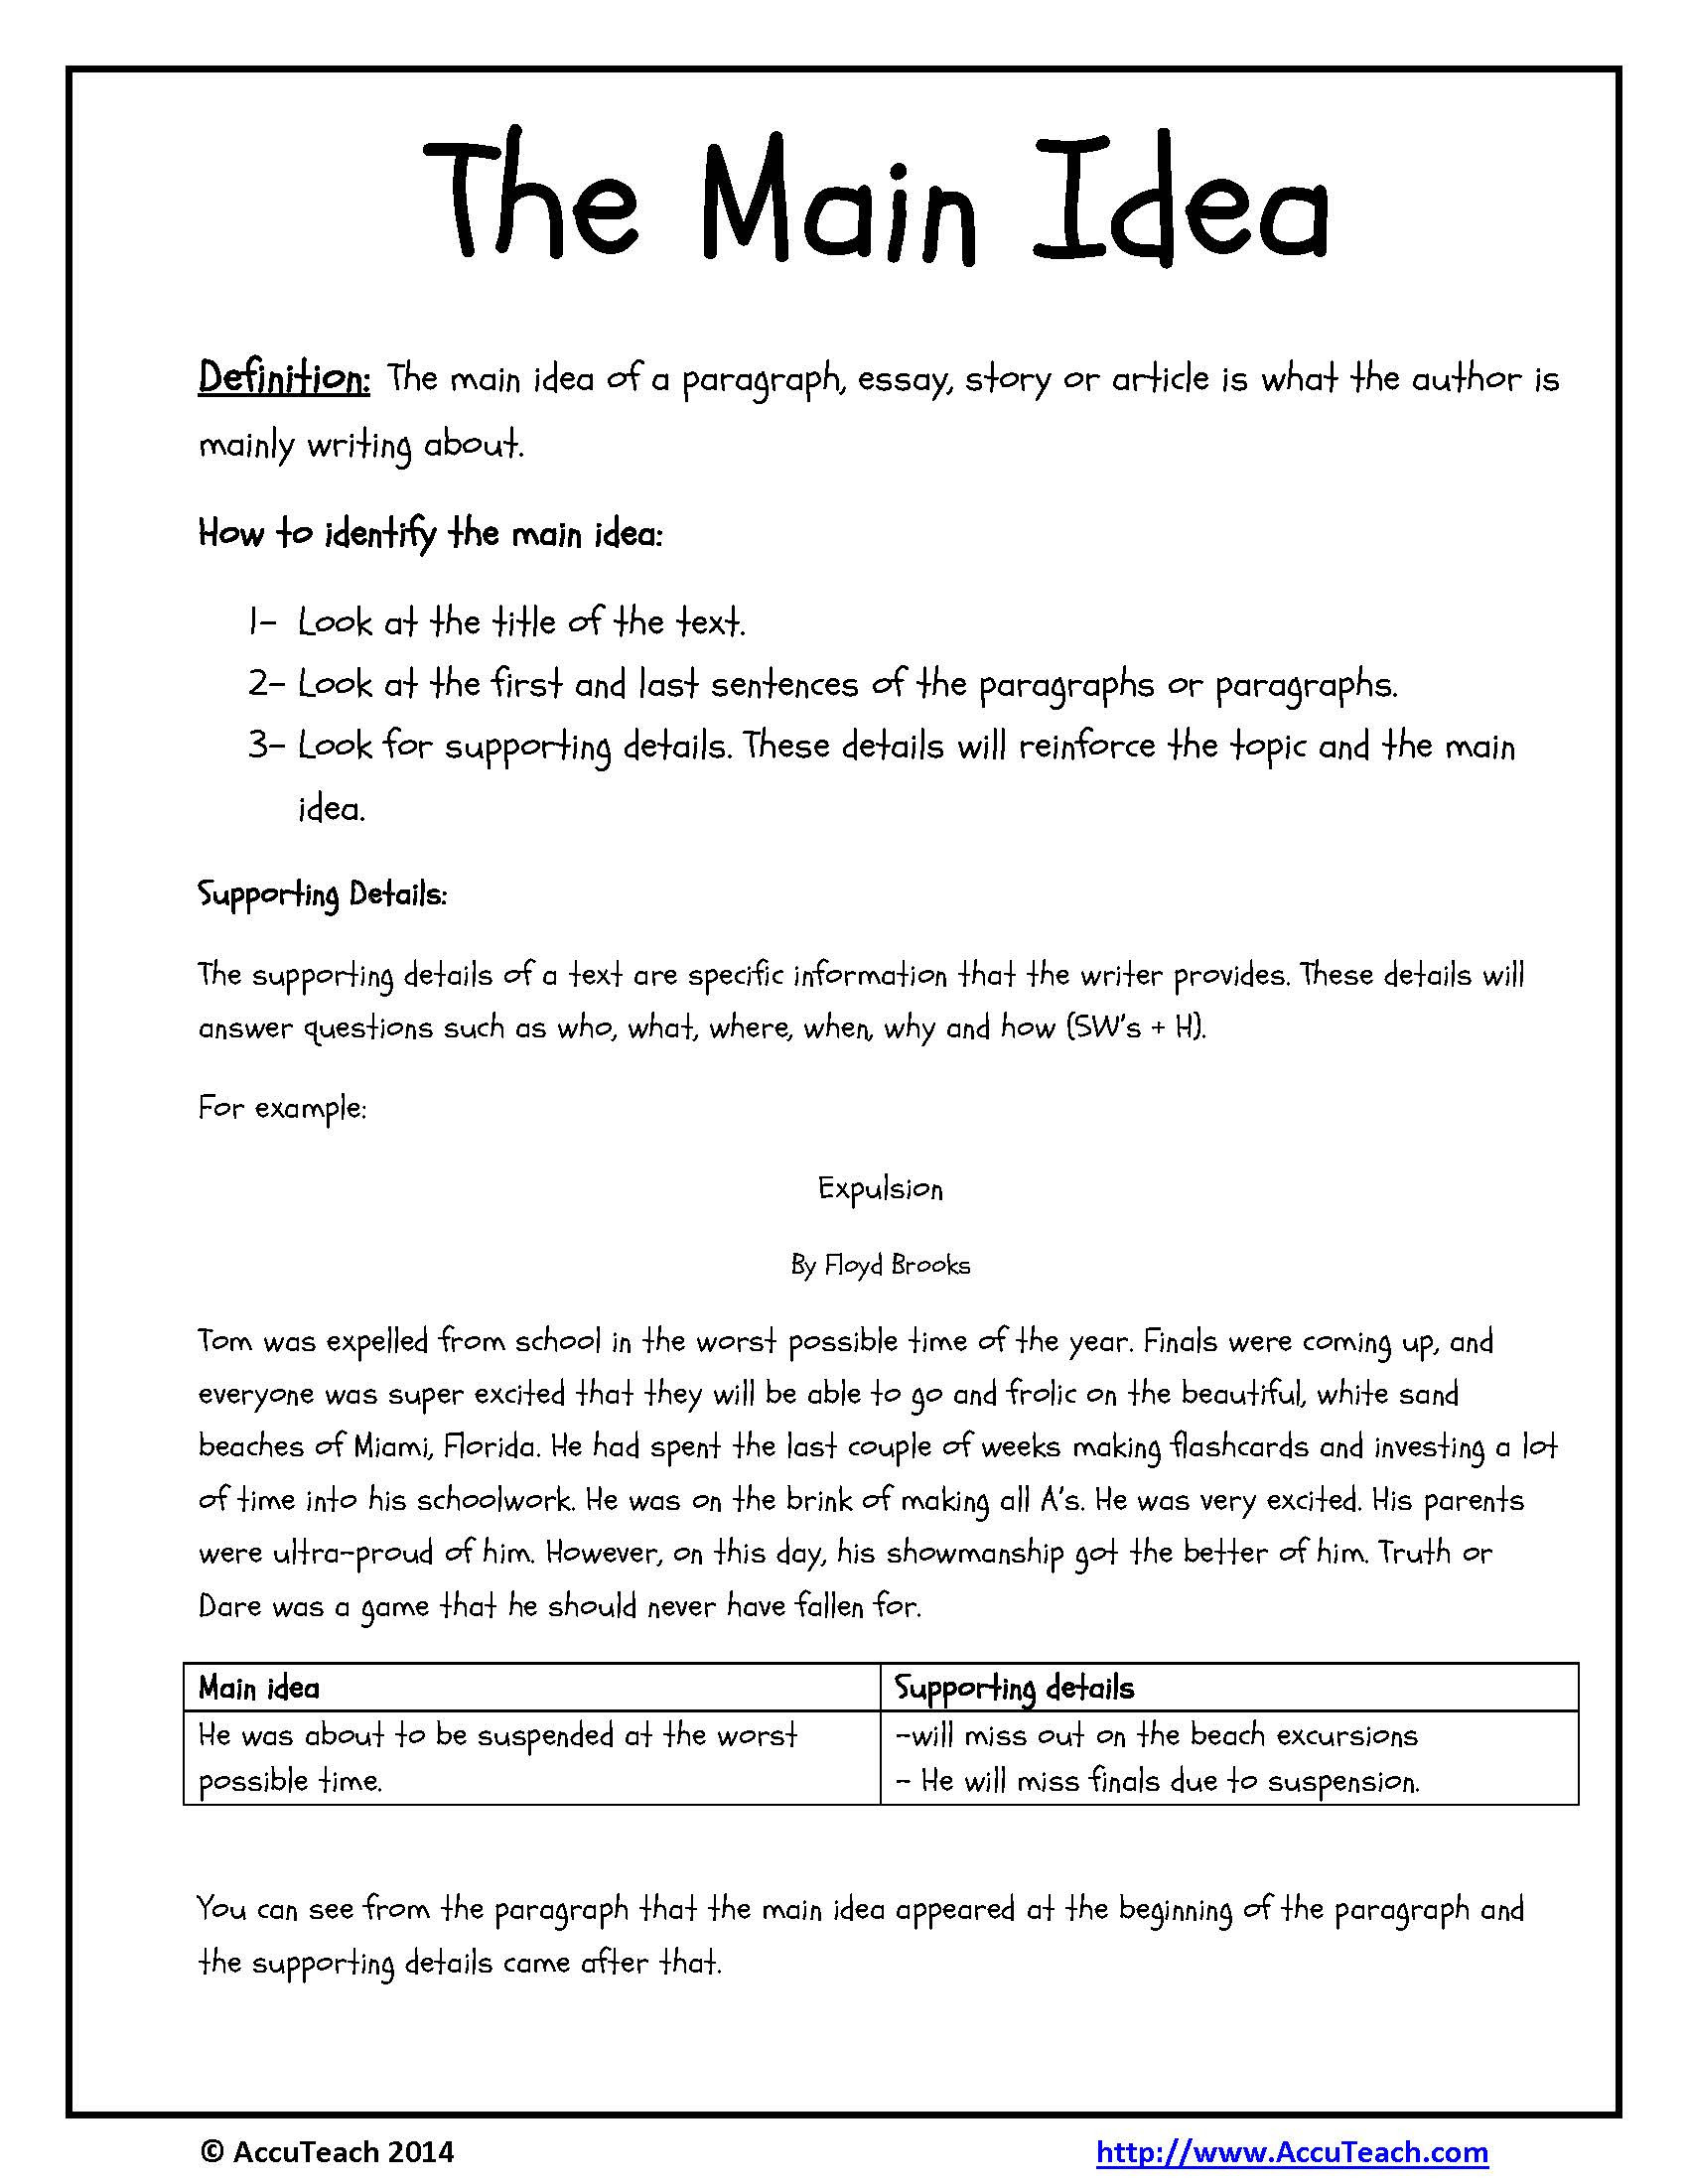 Main Idea Worksheets Middle School Central Idea Text Worksheet